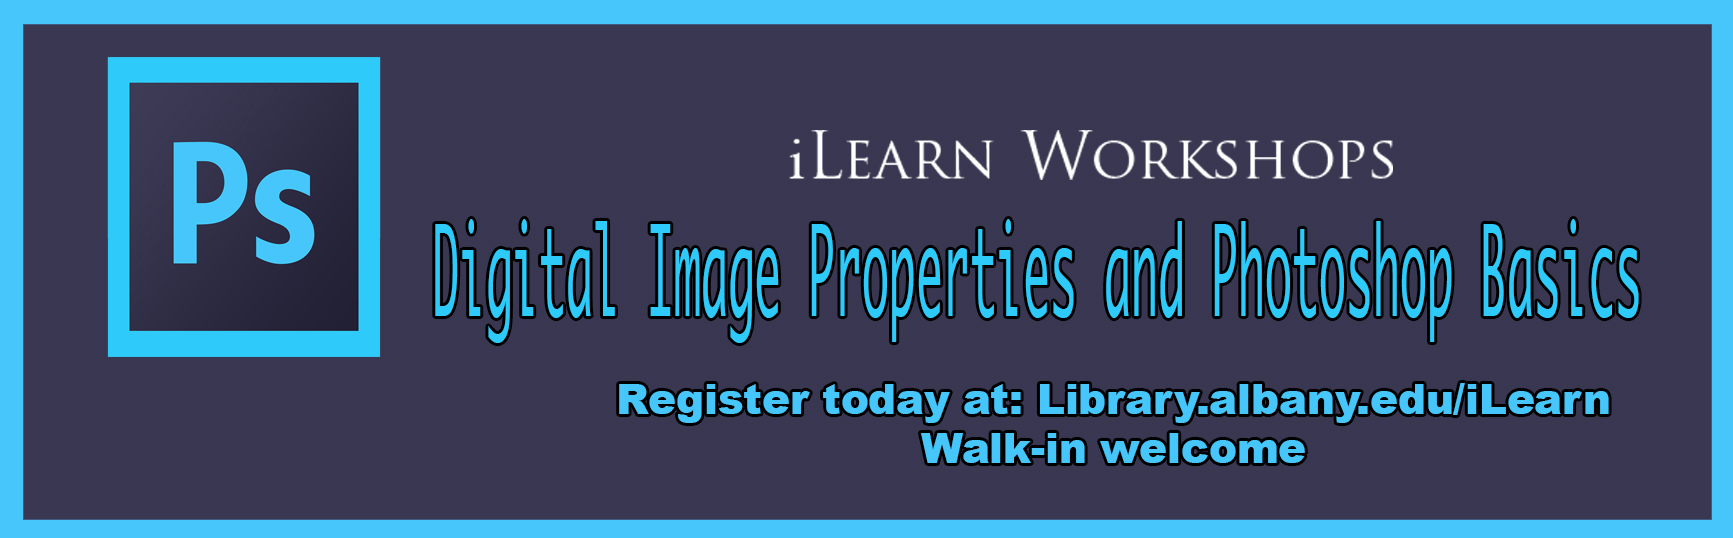 Digital Image Properties & Photoshop Basics